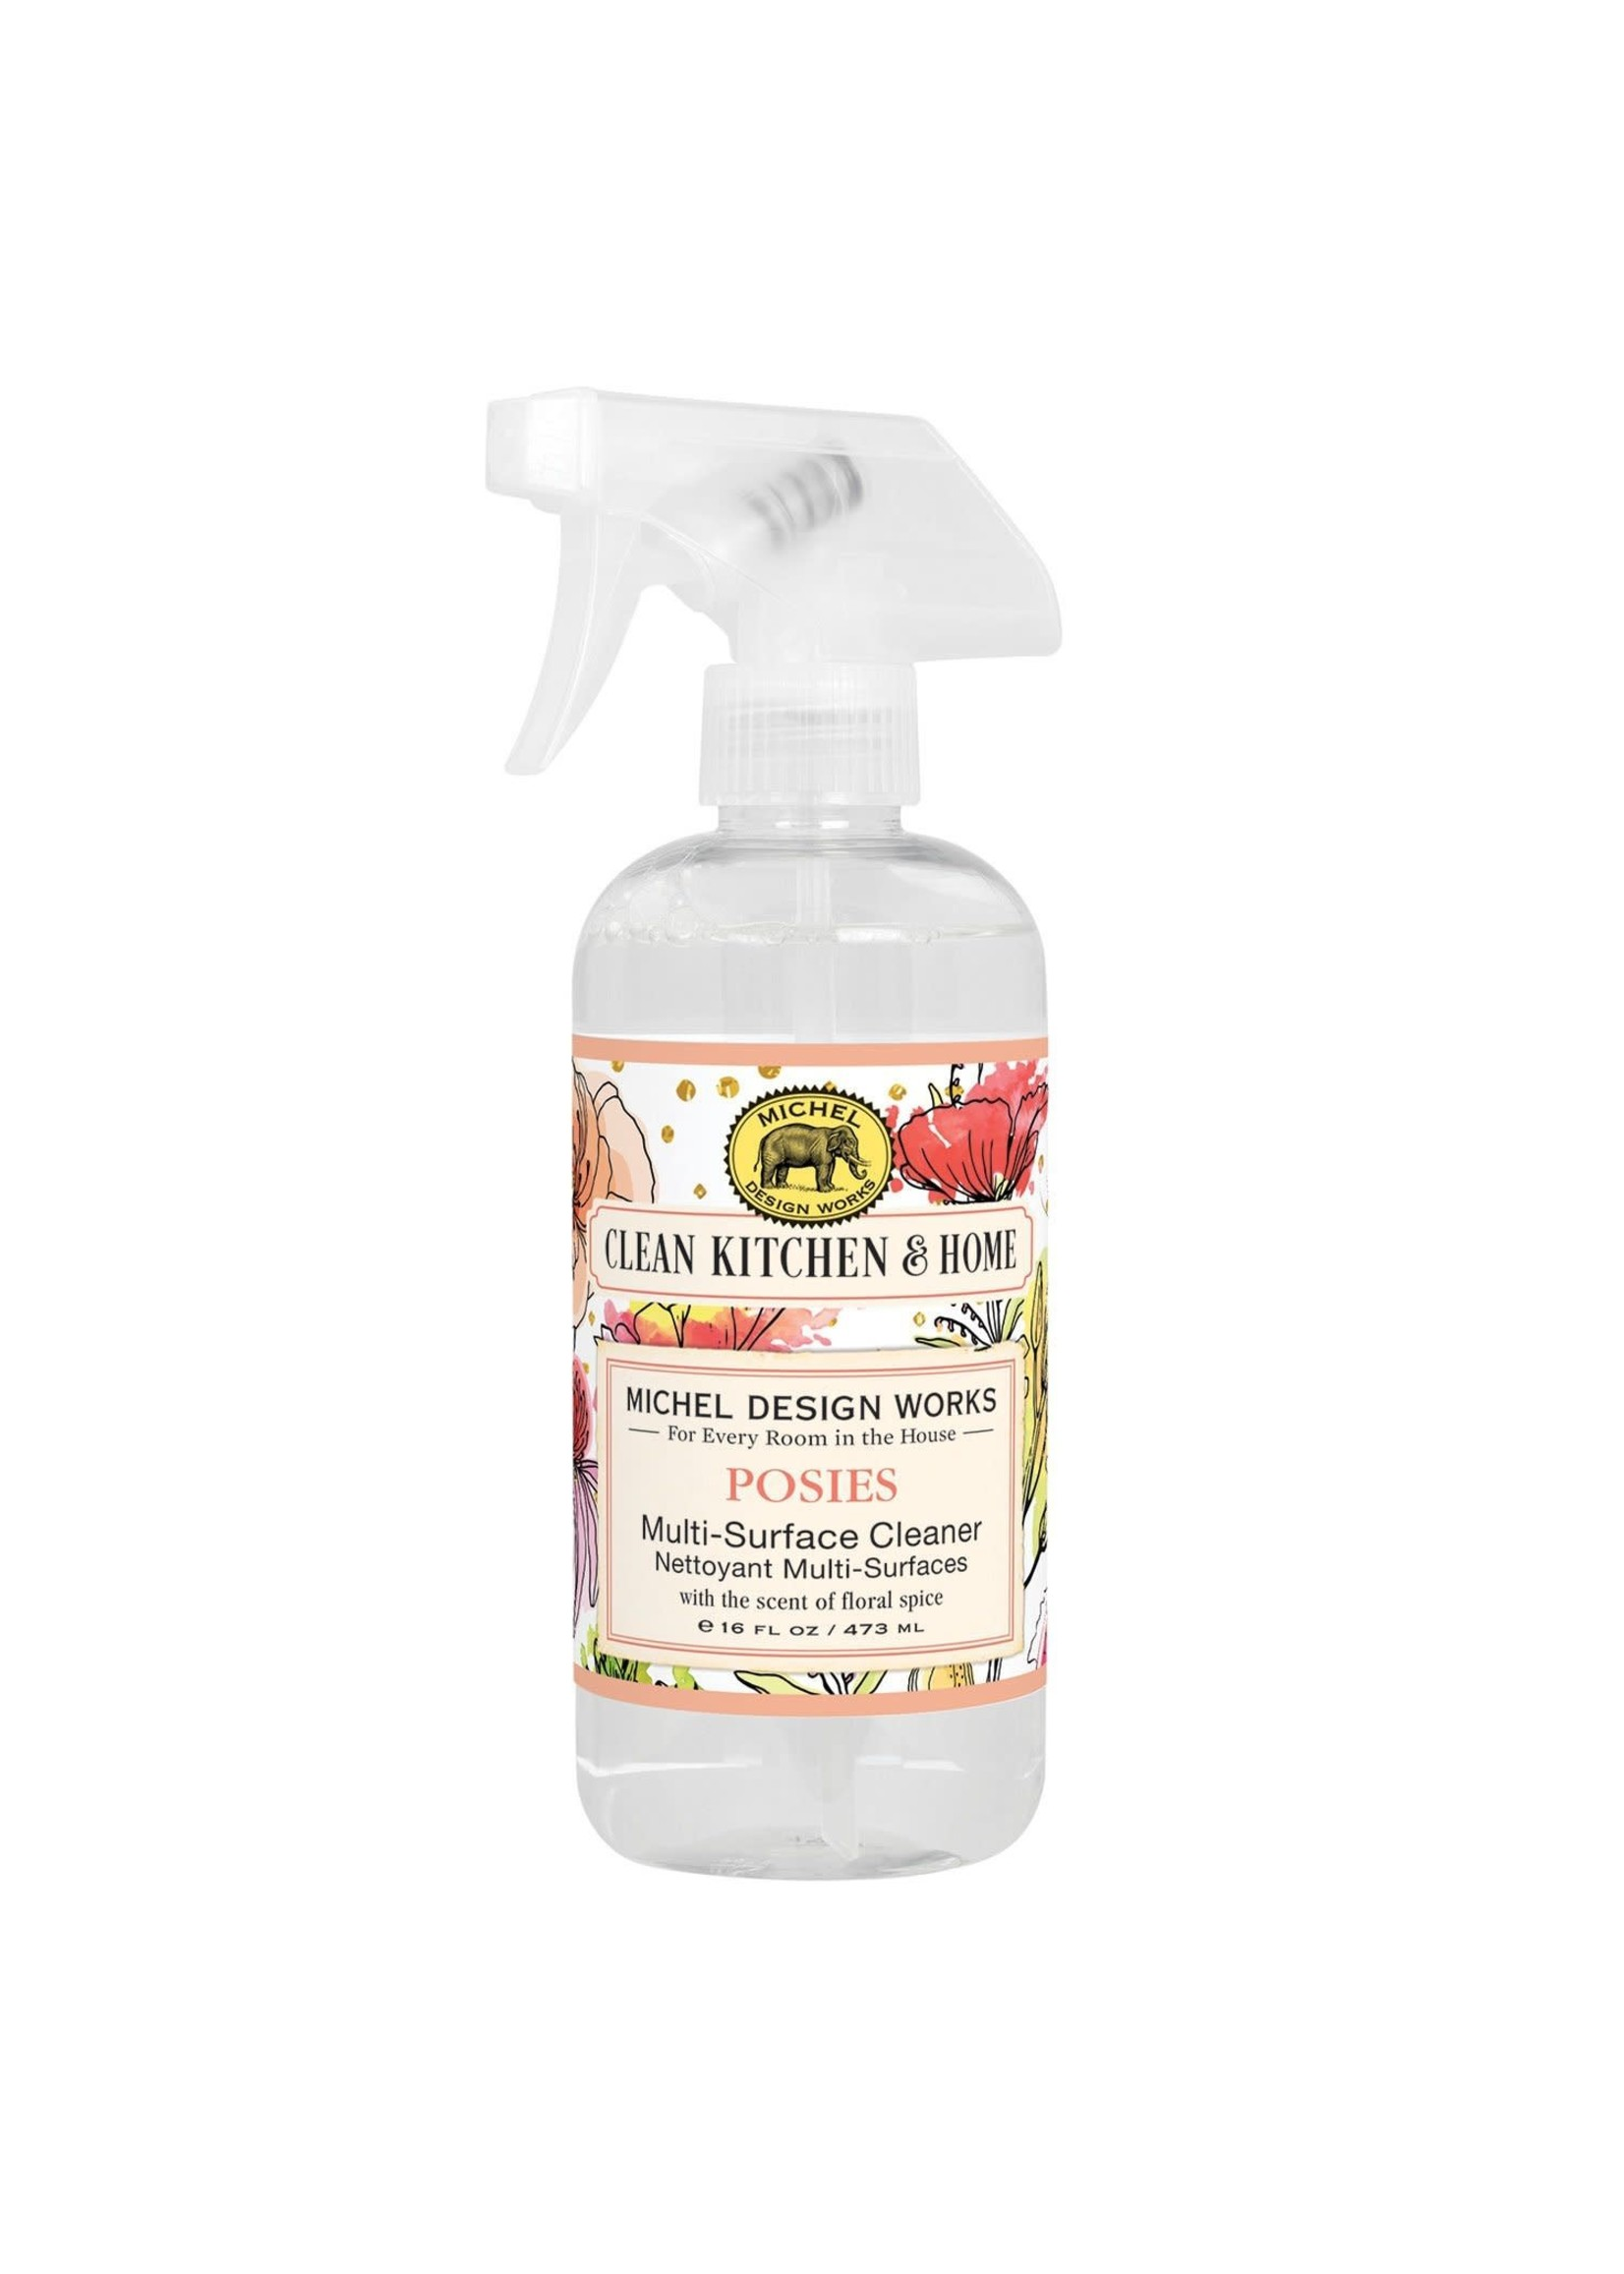 POSIES MULTI SURFACE CLEANER